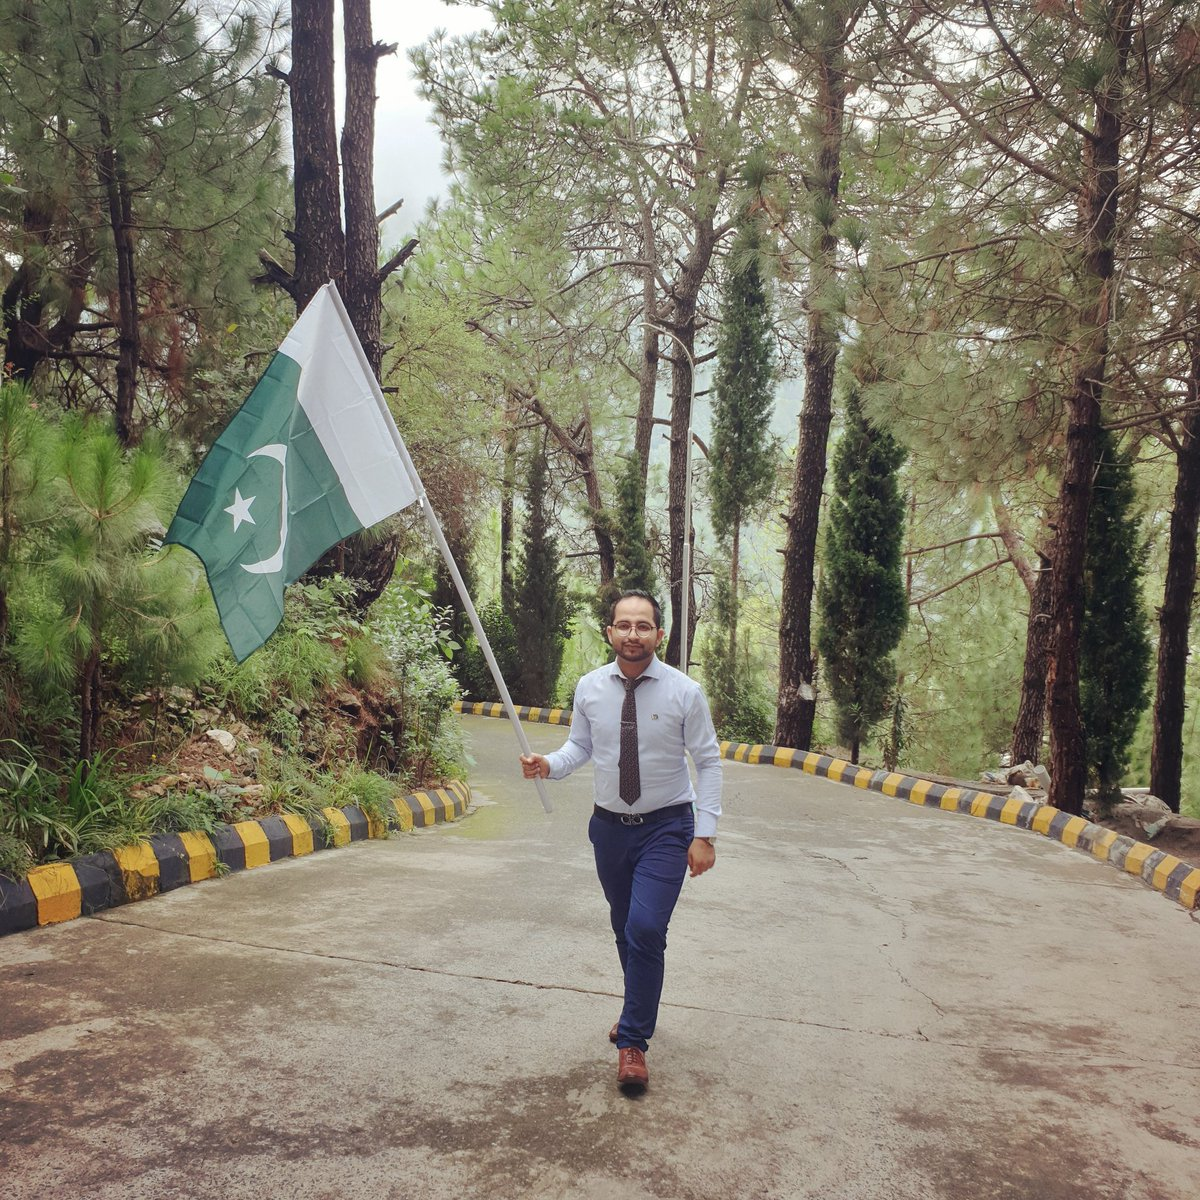 Wishing all of you a very Happy Independence Day 🇵🇰  ~ ♧ ~ • • • • • • • • • • #Pakistan #Happy #Independence #day #14August #2020 #nature #pak #army #pakarmy #flag #jashneazadimubarak https://t.co/tBSEc9t928